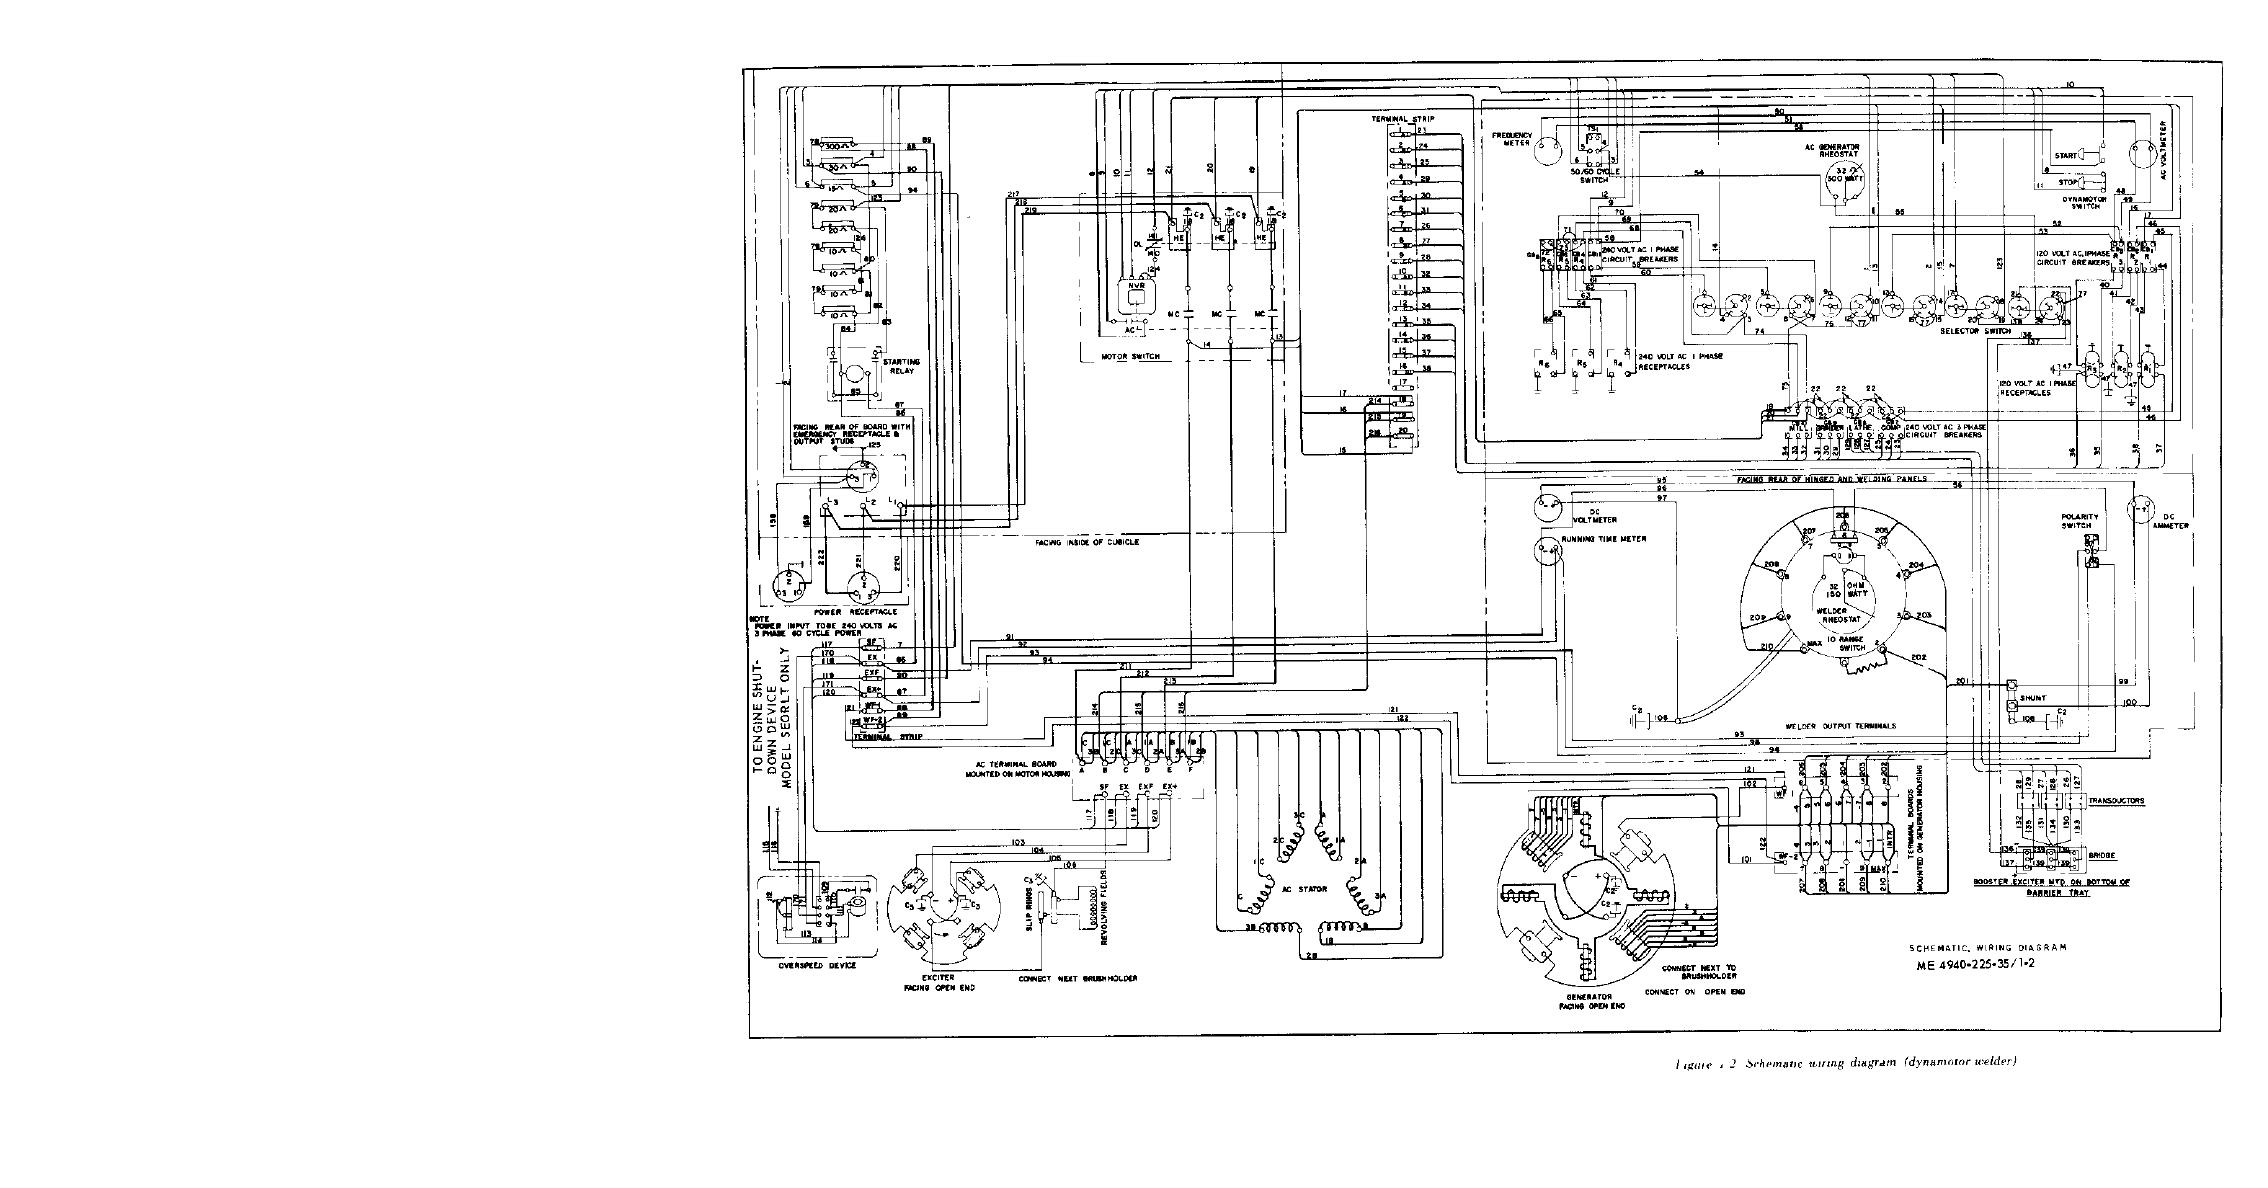 ac welder wiring diagram wiring diagram \u2022 miller welding machine wiring diagram ac welder wiring diagram images gallery